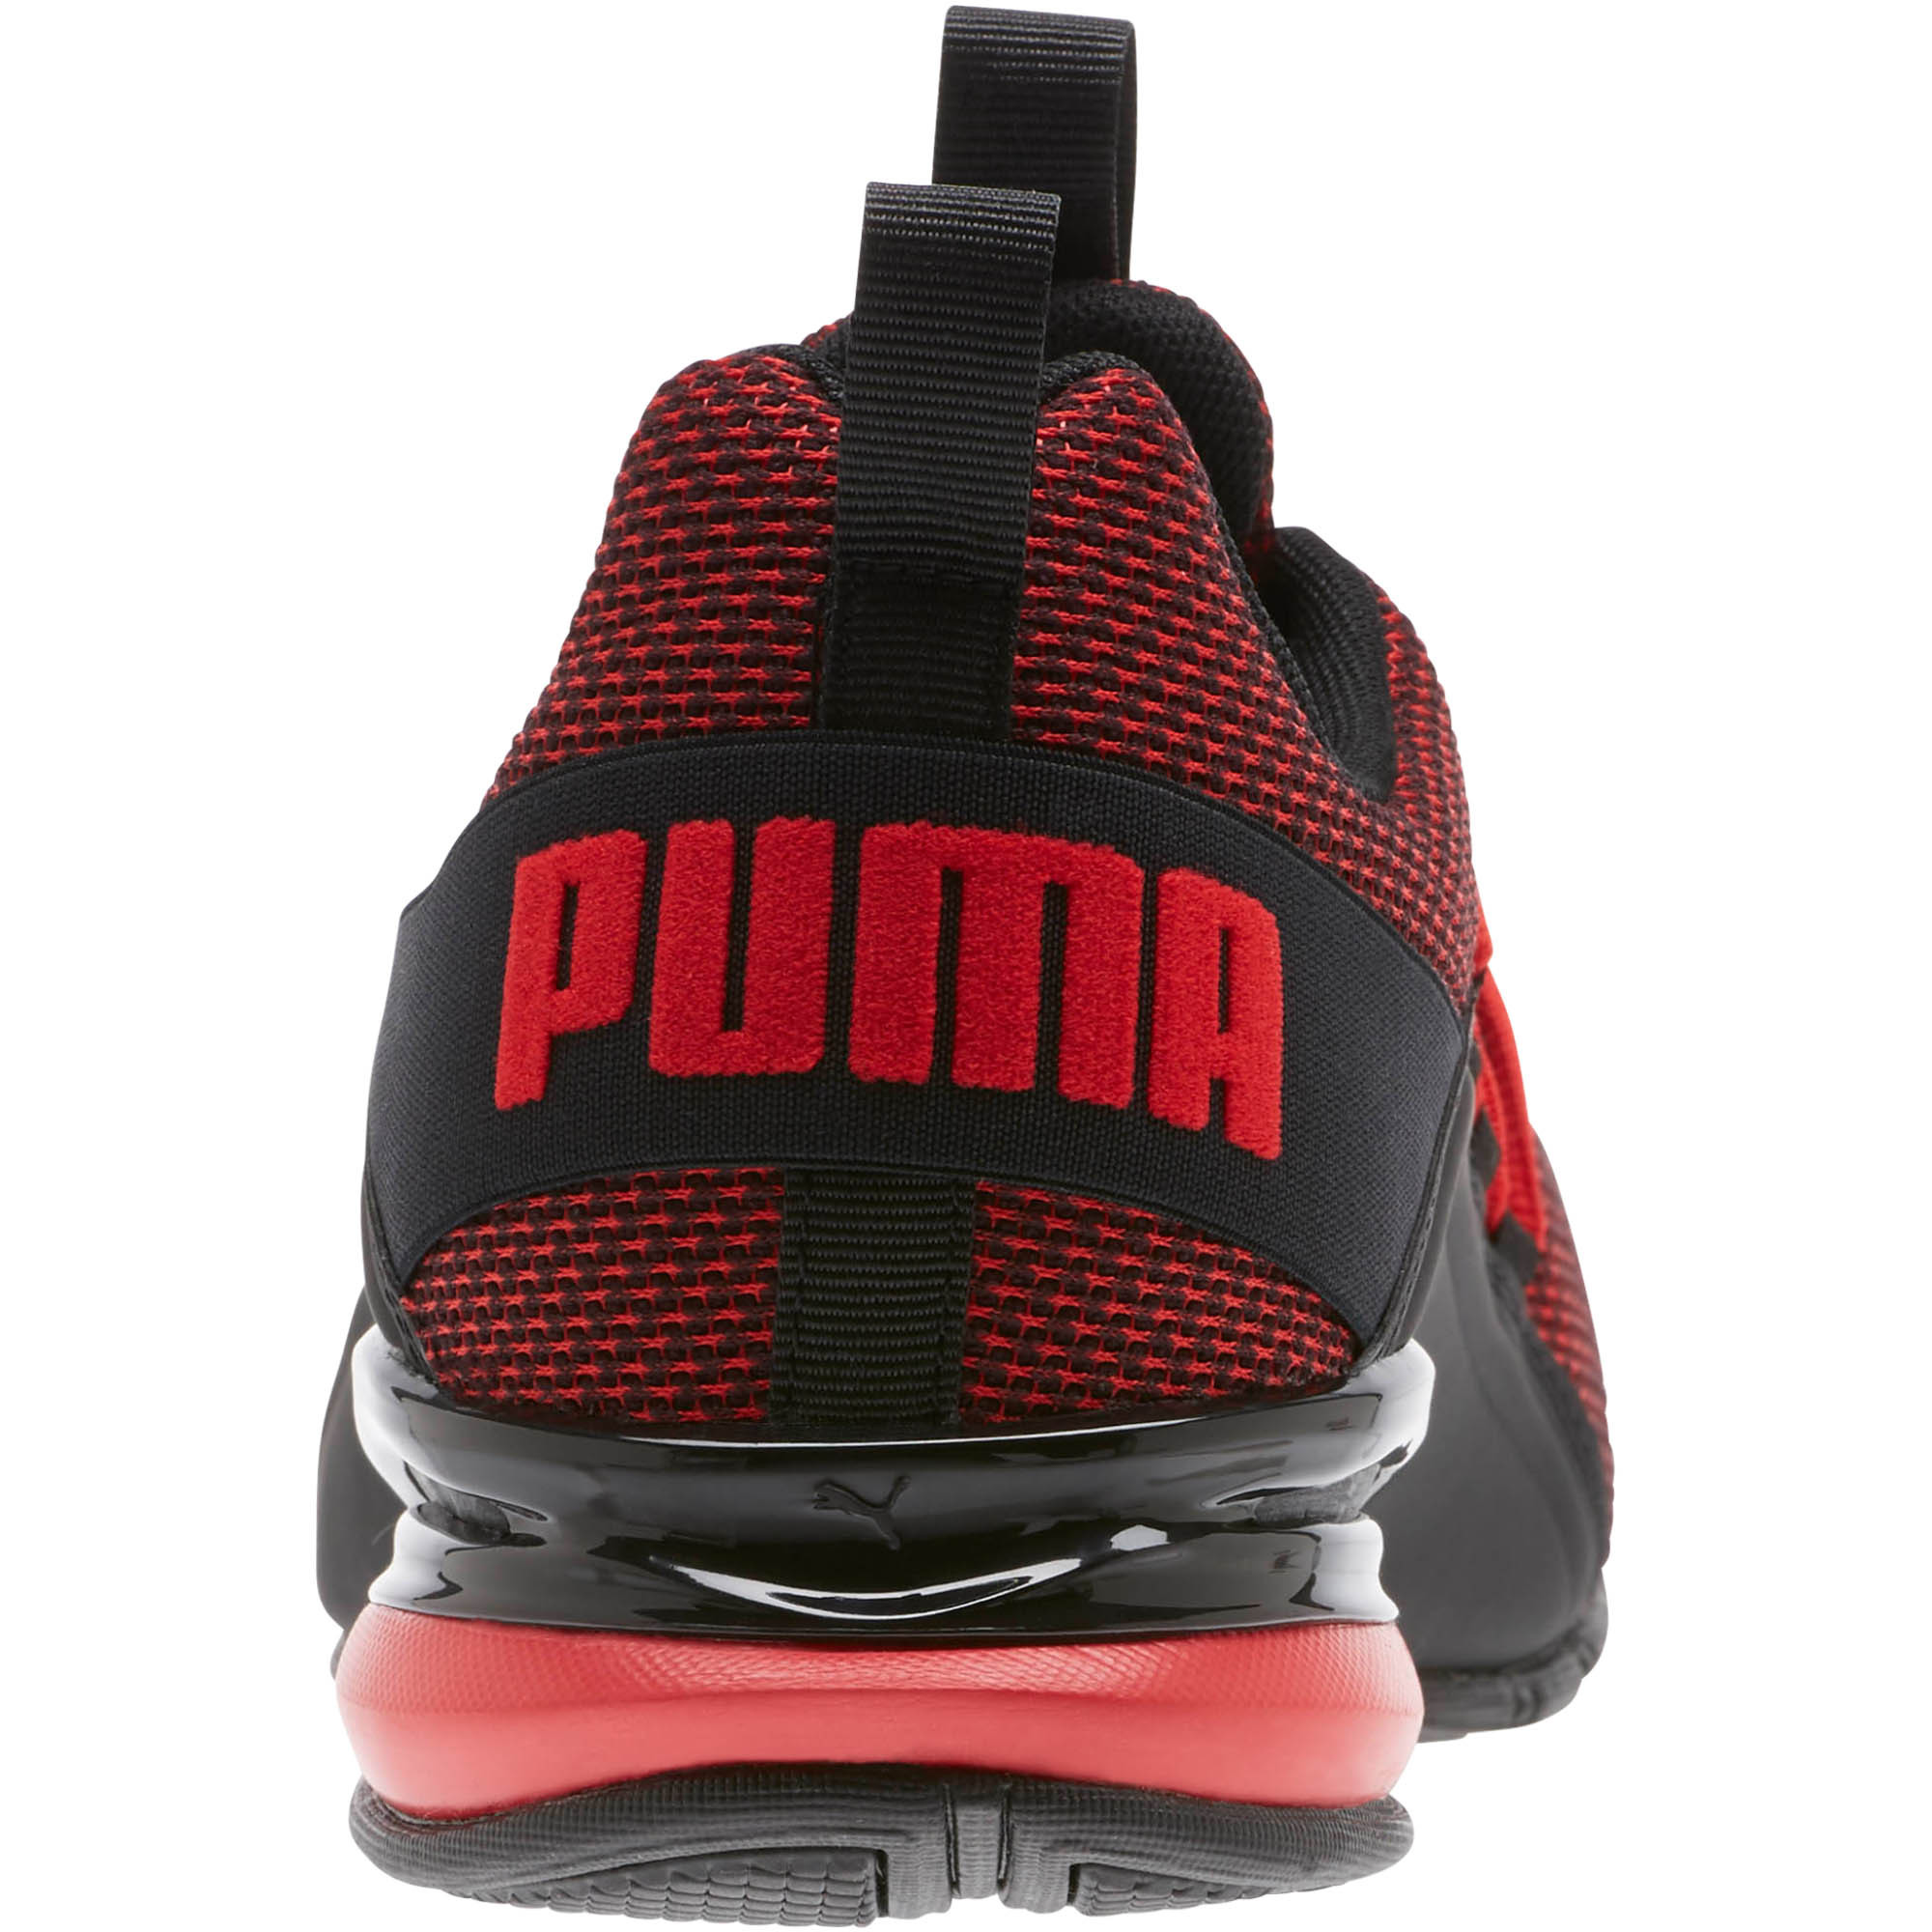 PUMA-Men-039-s-Axelion-Mesh-Wide-Training-Shoes thumbnail 3